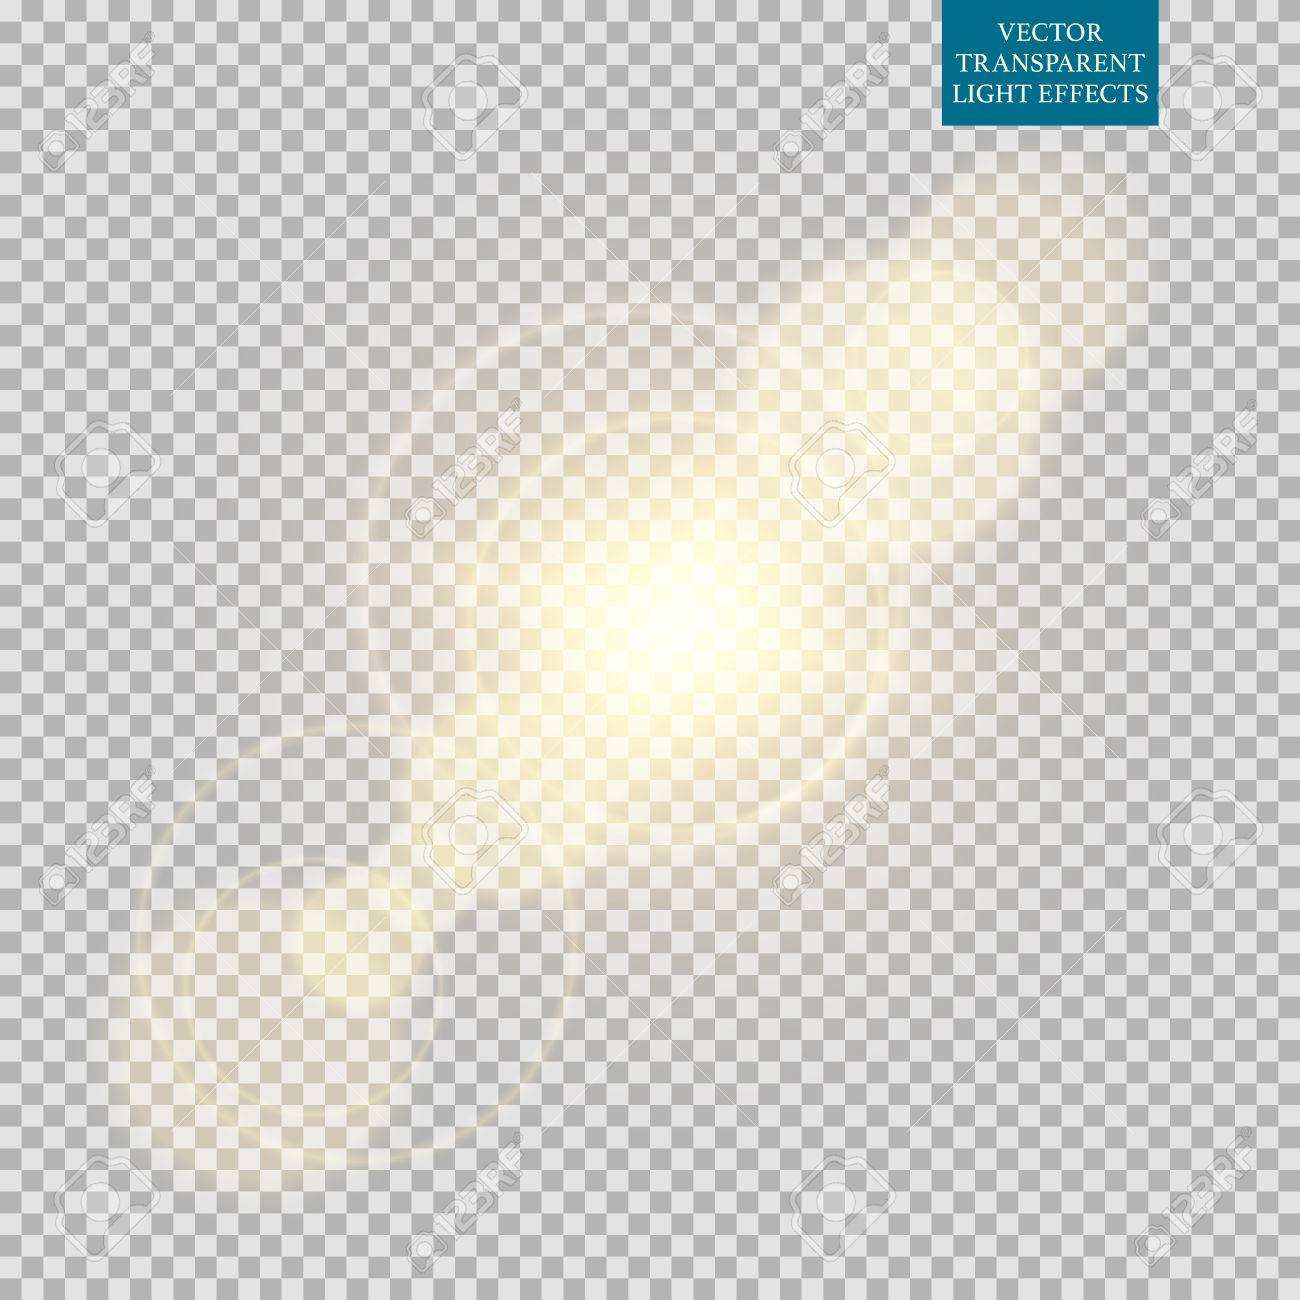 Abstract image of lighting flare set. - 54971365